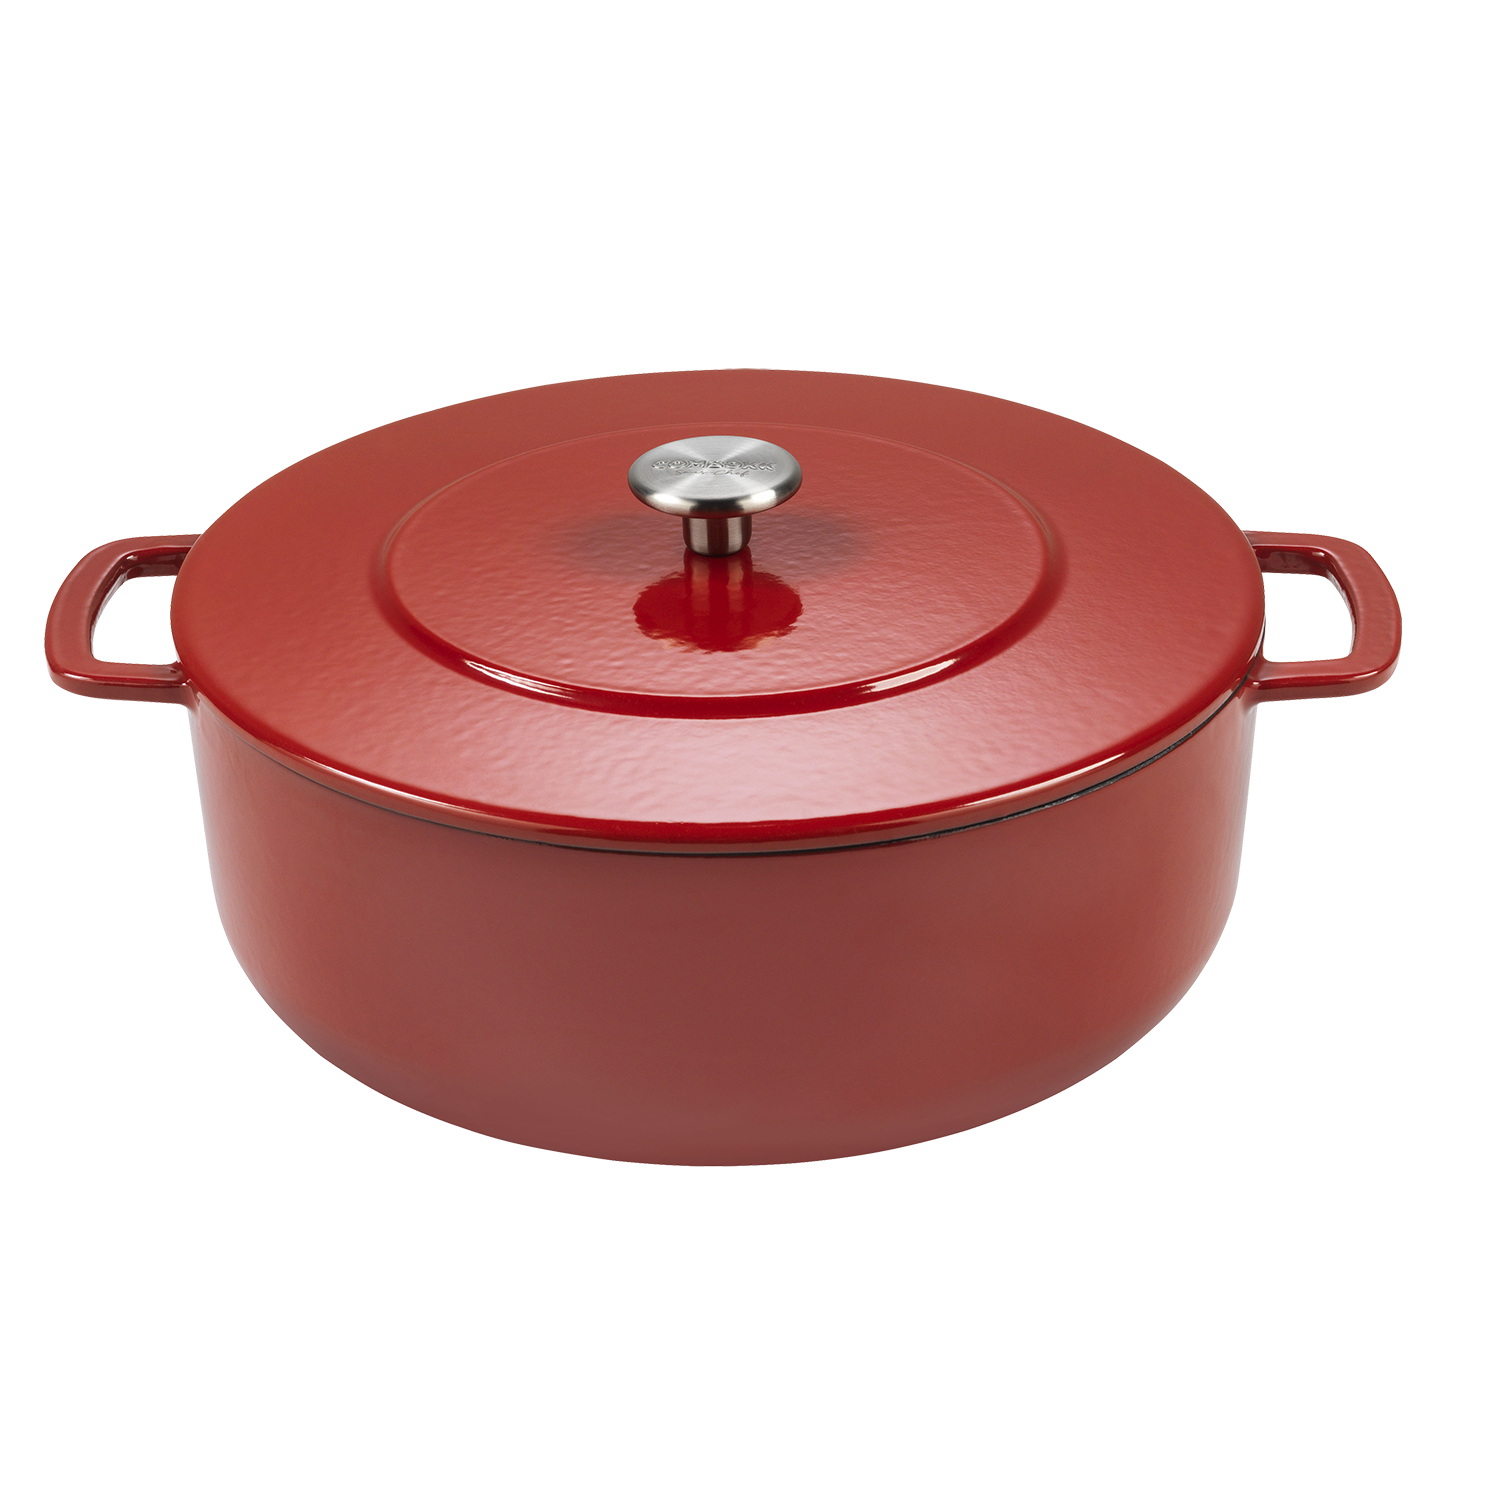 Sous-Chef Dutch Oven Red 28 CM